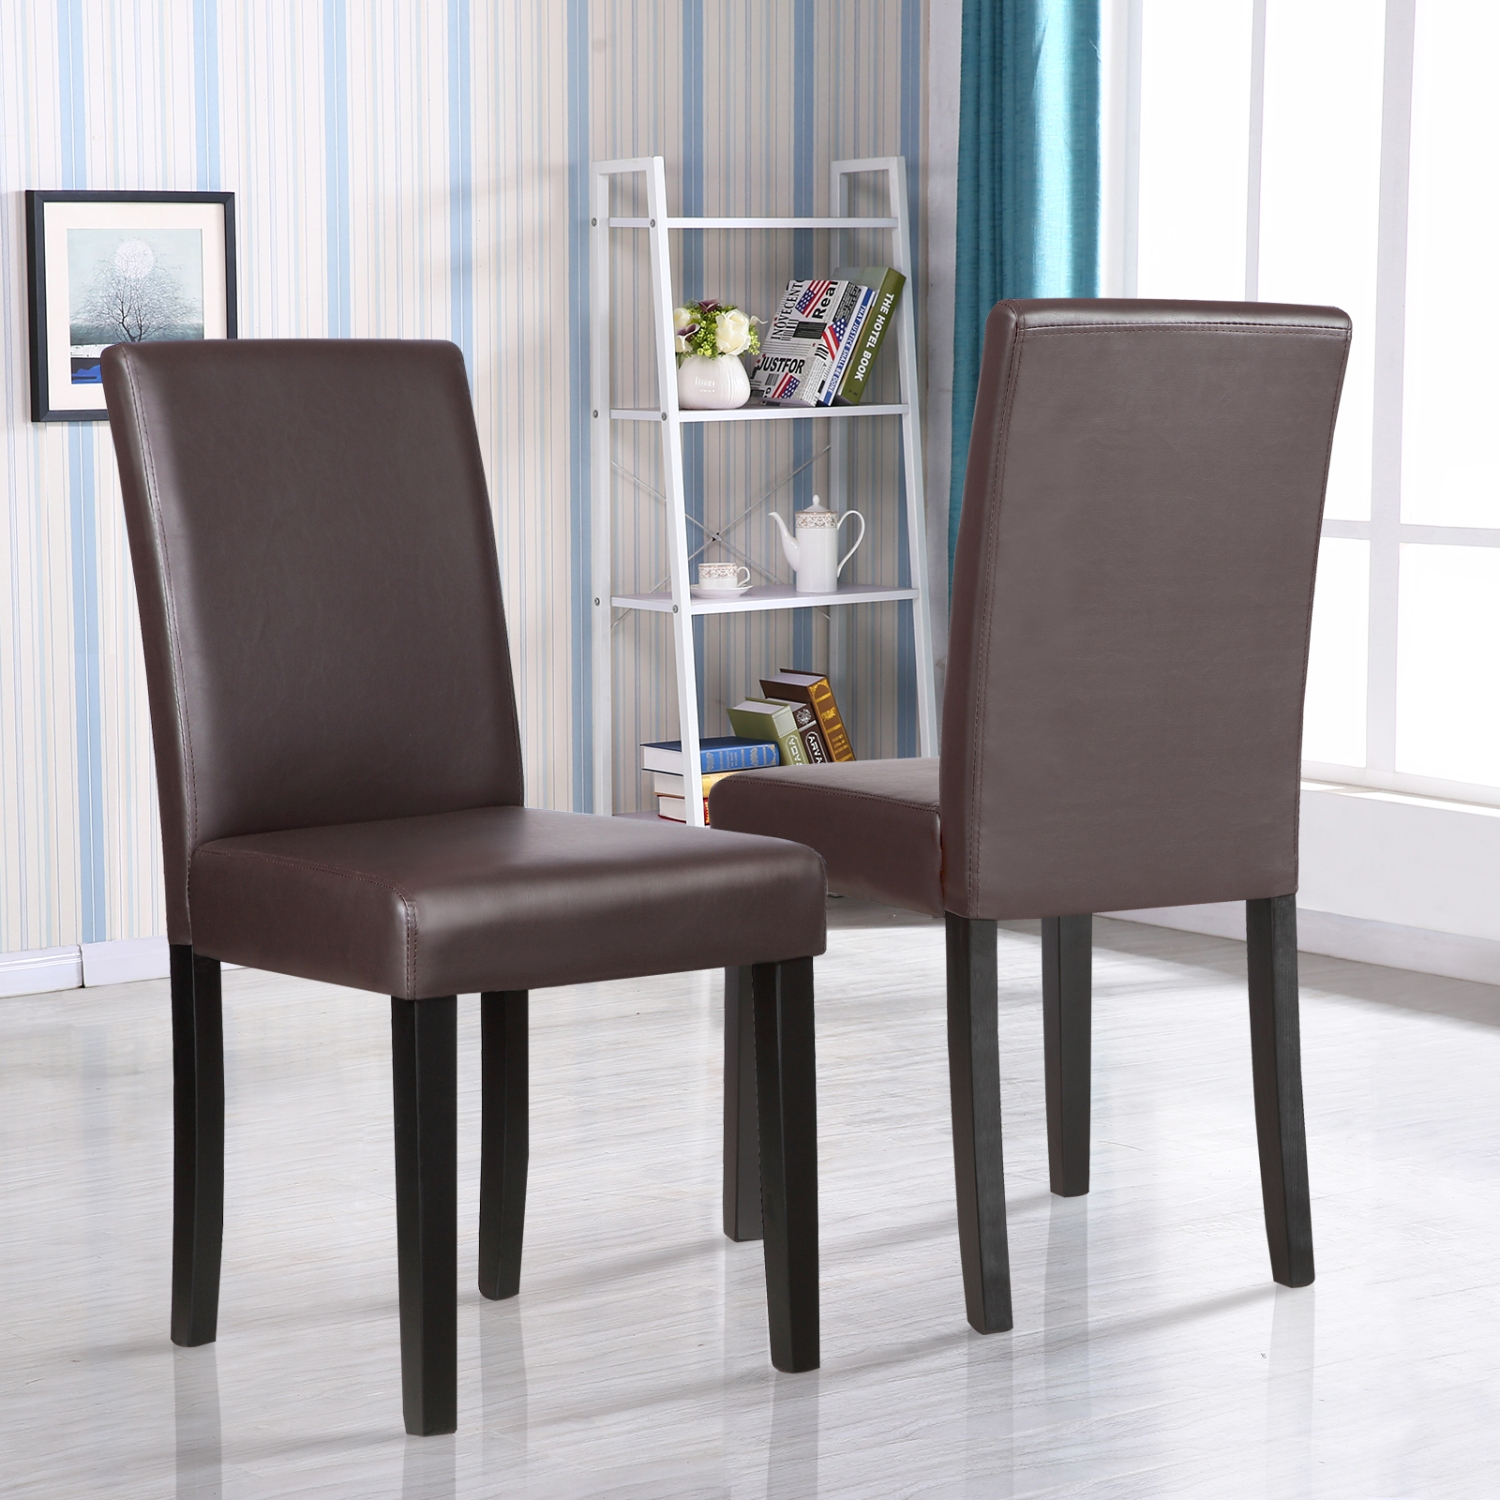 Brown Dining Room Chairs: Set Of 2 Kitchen Dinette Dining Room Chair Elegant Design